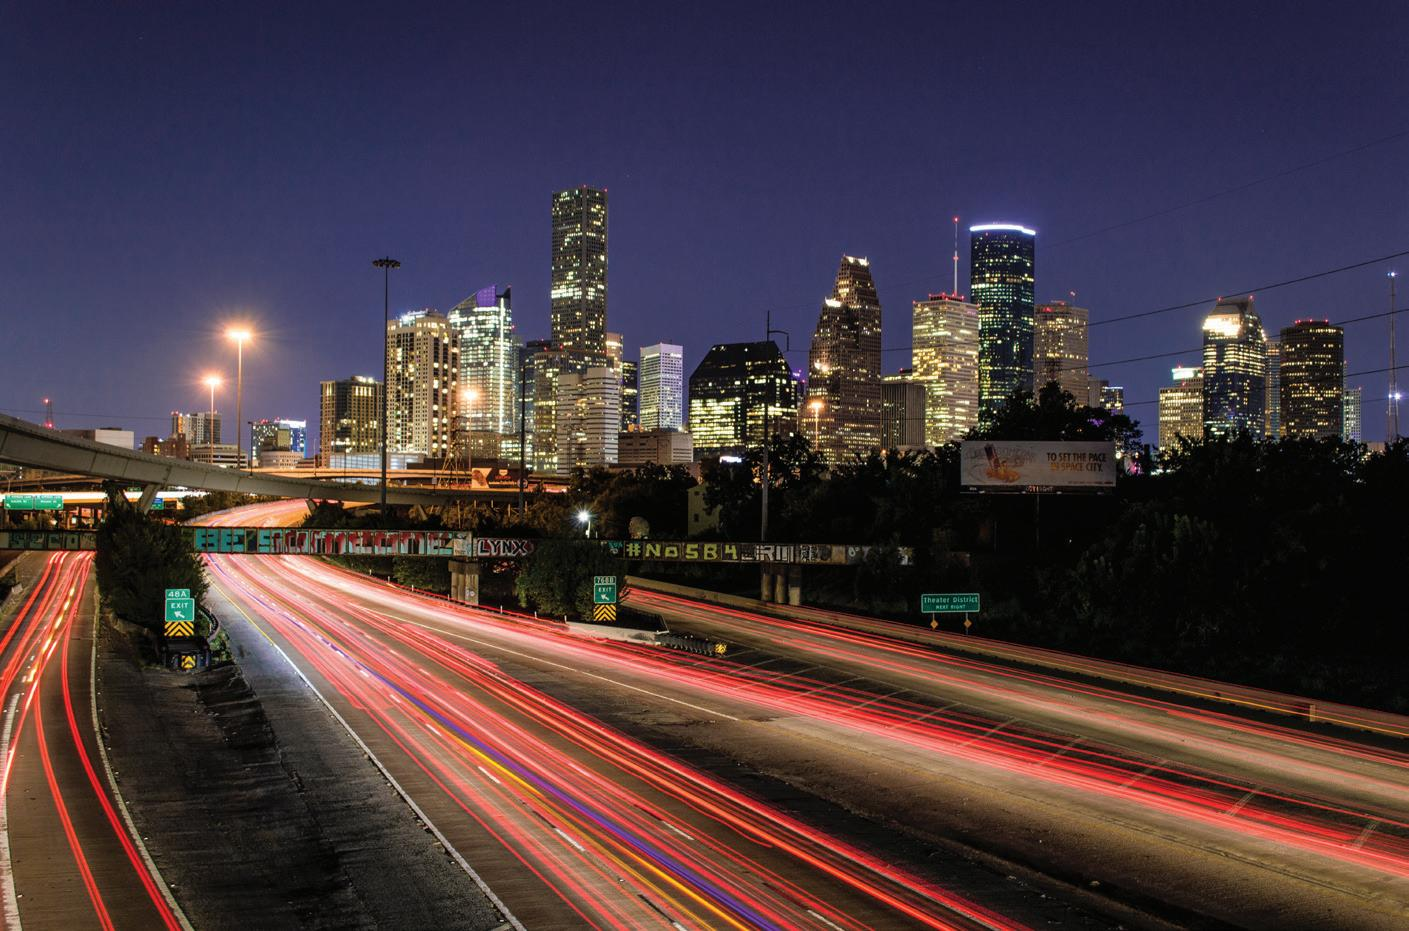 Page 26 of Houston office market vacancies still among highest in nation Despite the turmoil, the city's